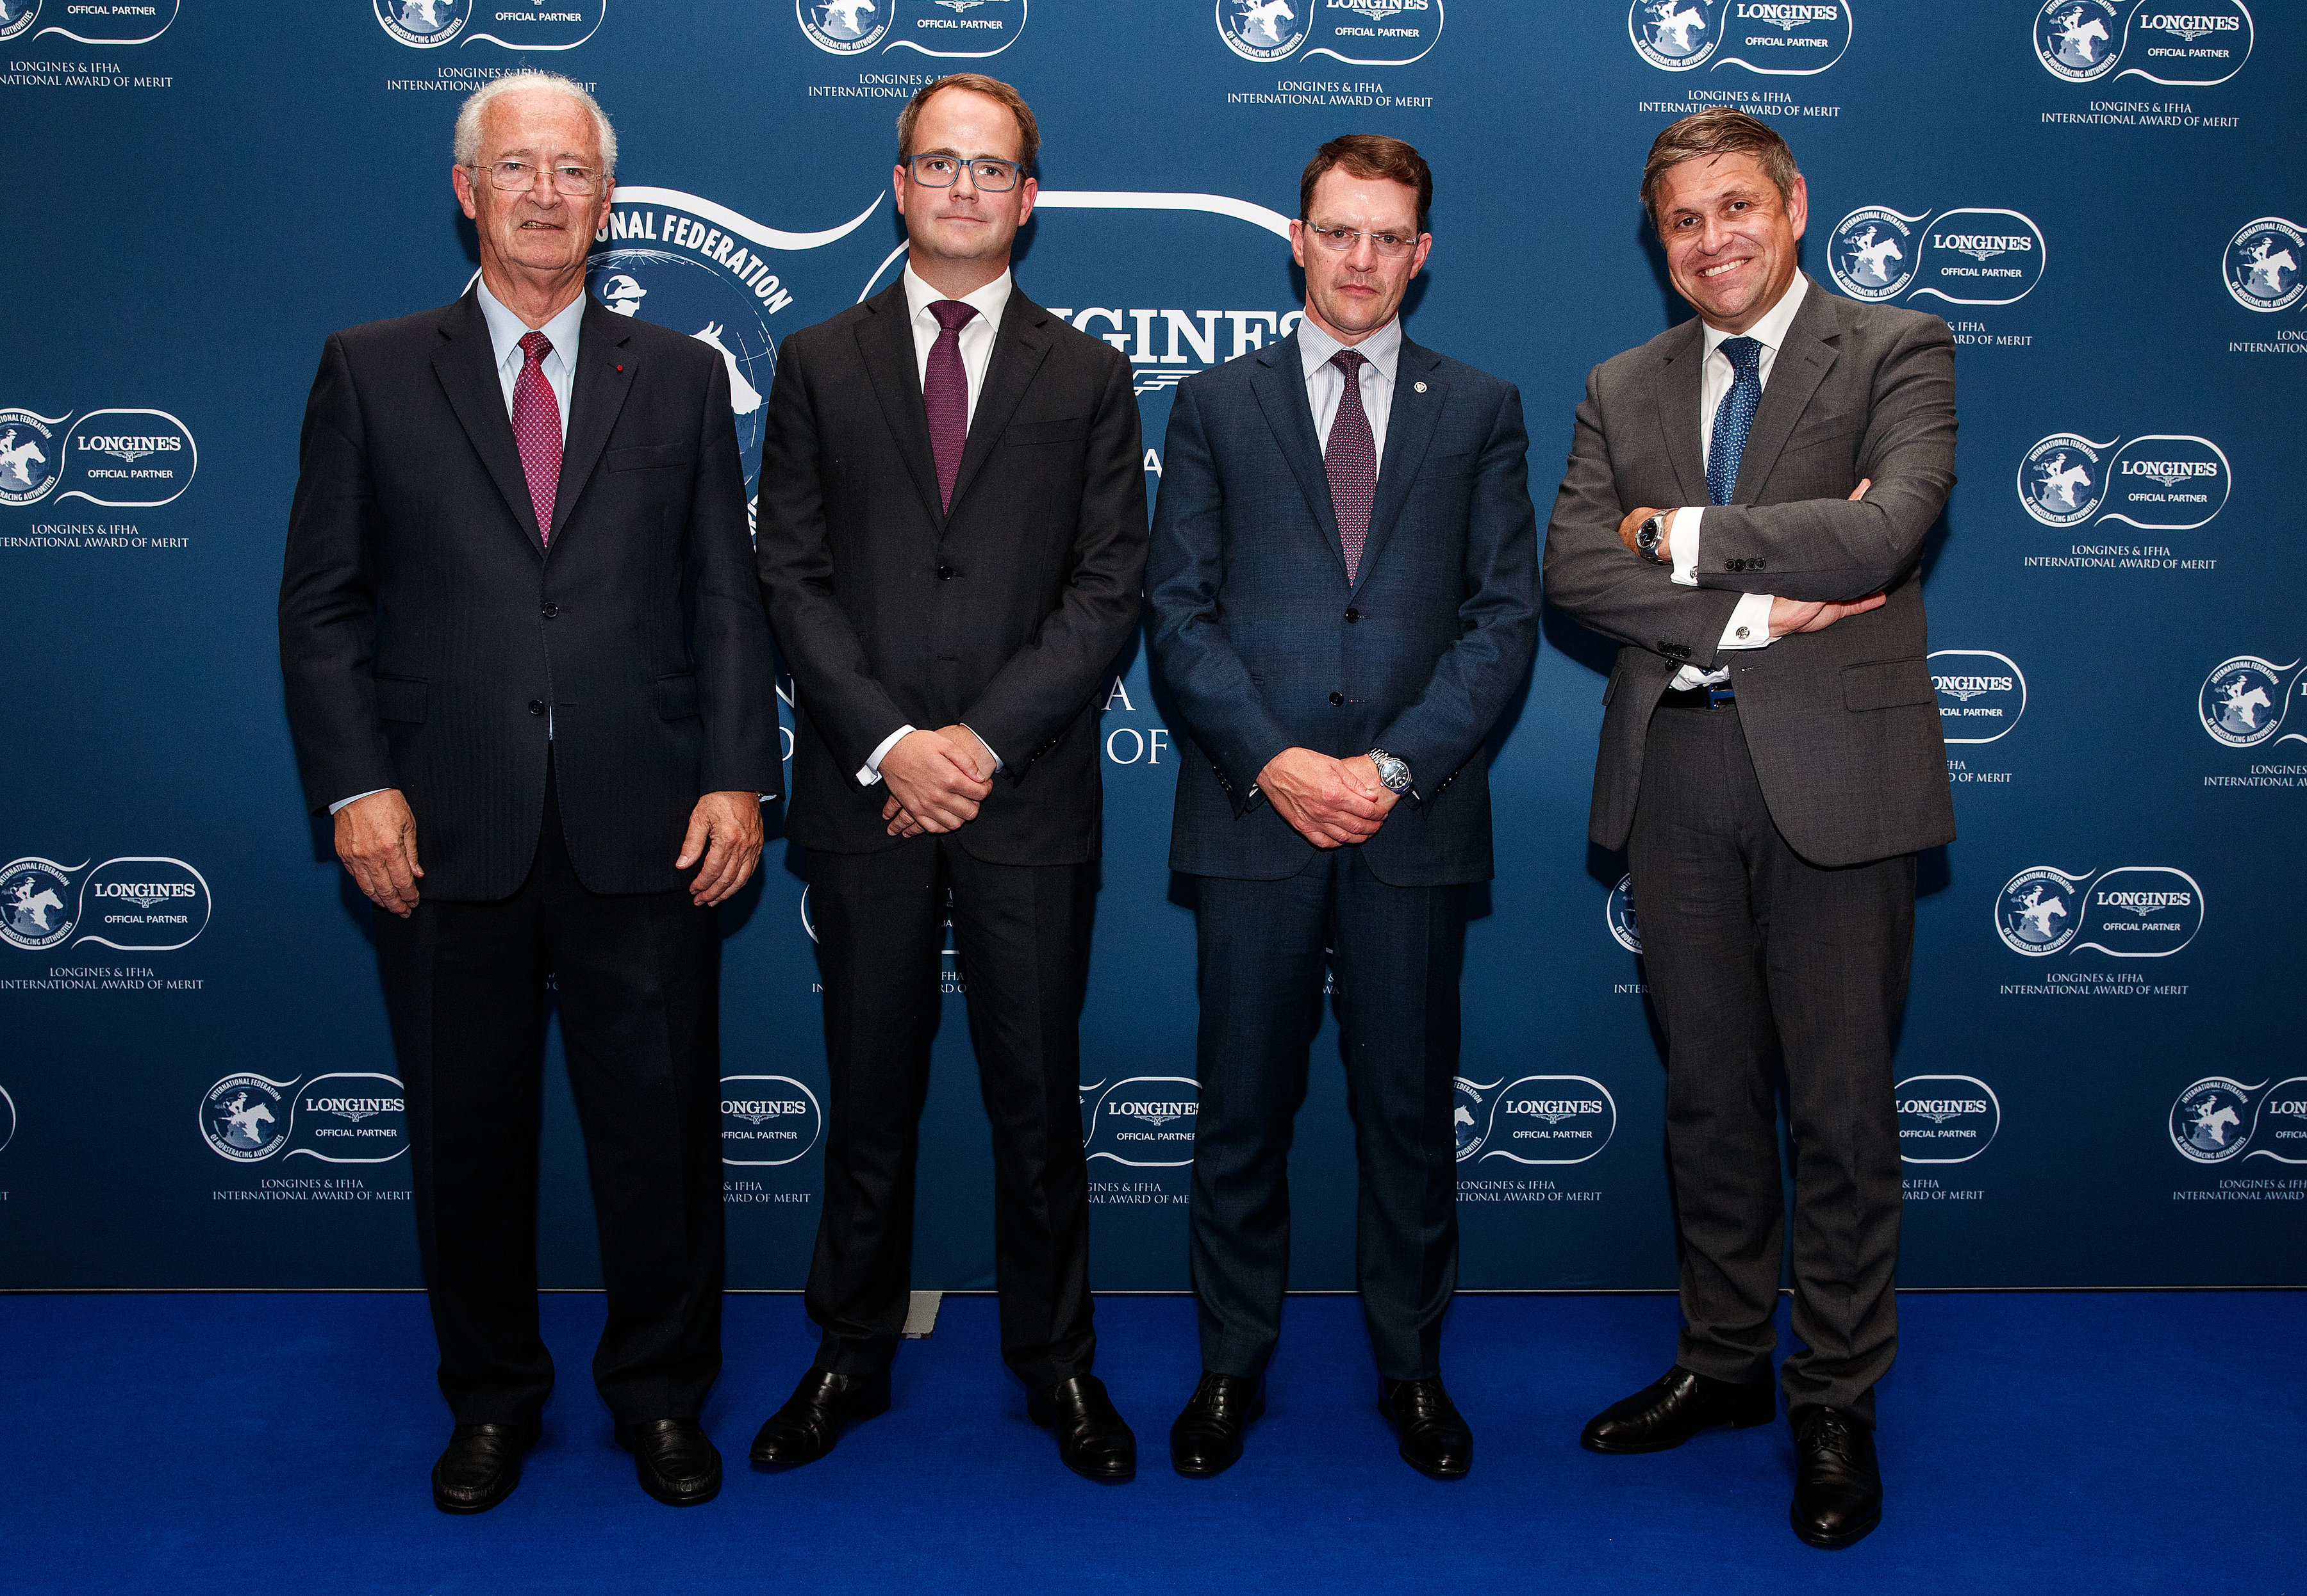 La famille Magnier et Aidan O'Brien reçoivent le Longines and IFHA International Award of Merit 2018